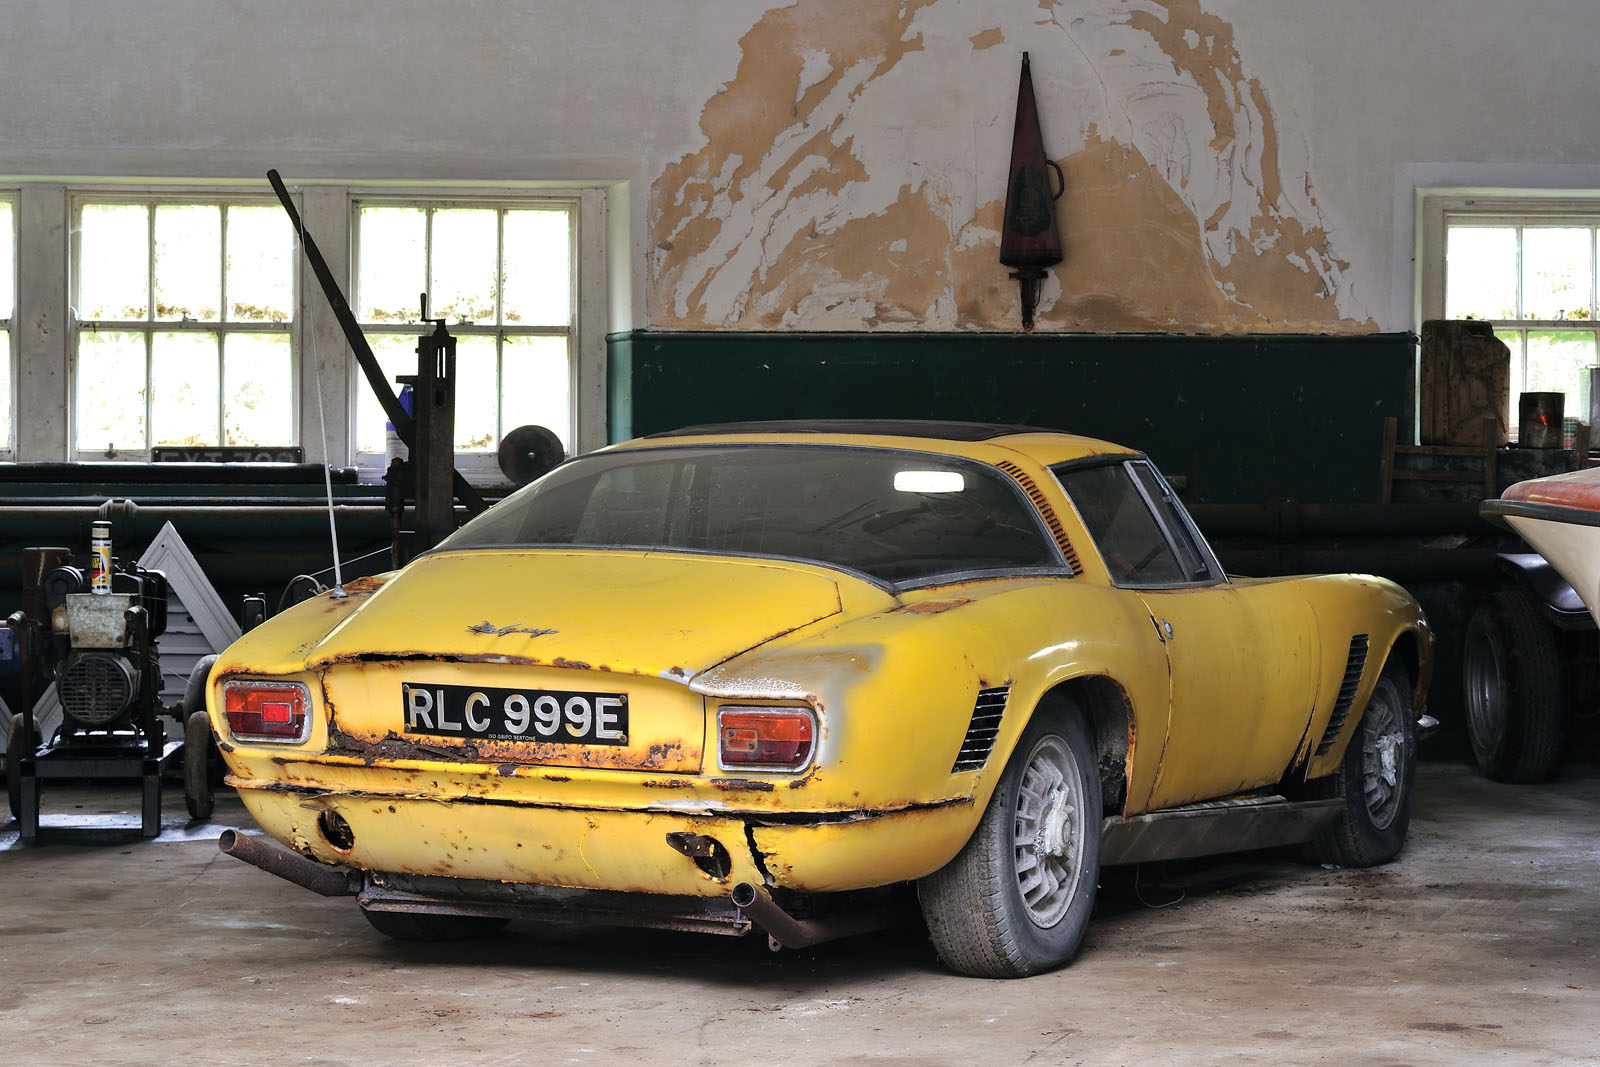 1967 Iso Grifo Gl 2016 Rm Sotheby S London Sale Feature: This Poor Abandoned Iso Grifo Is About To Get A New Home